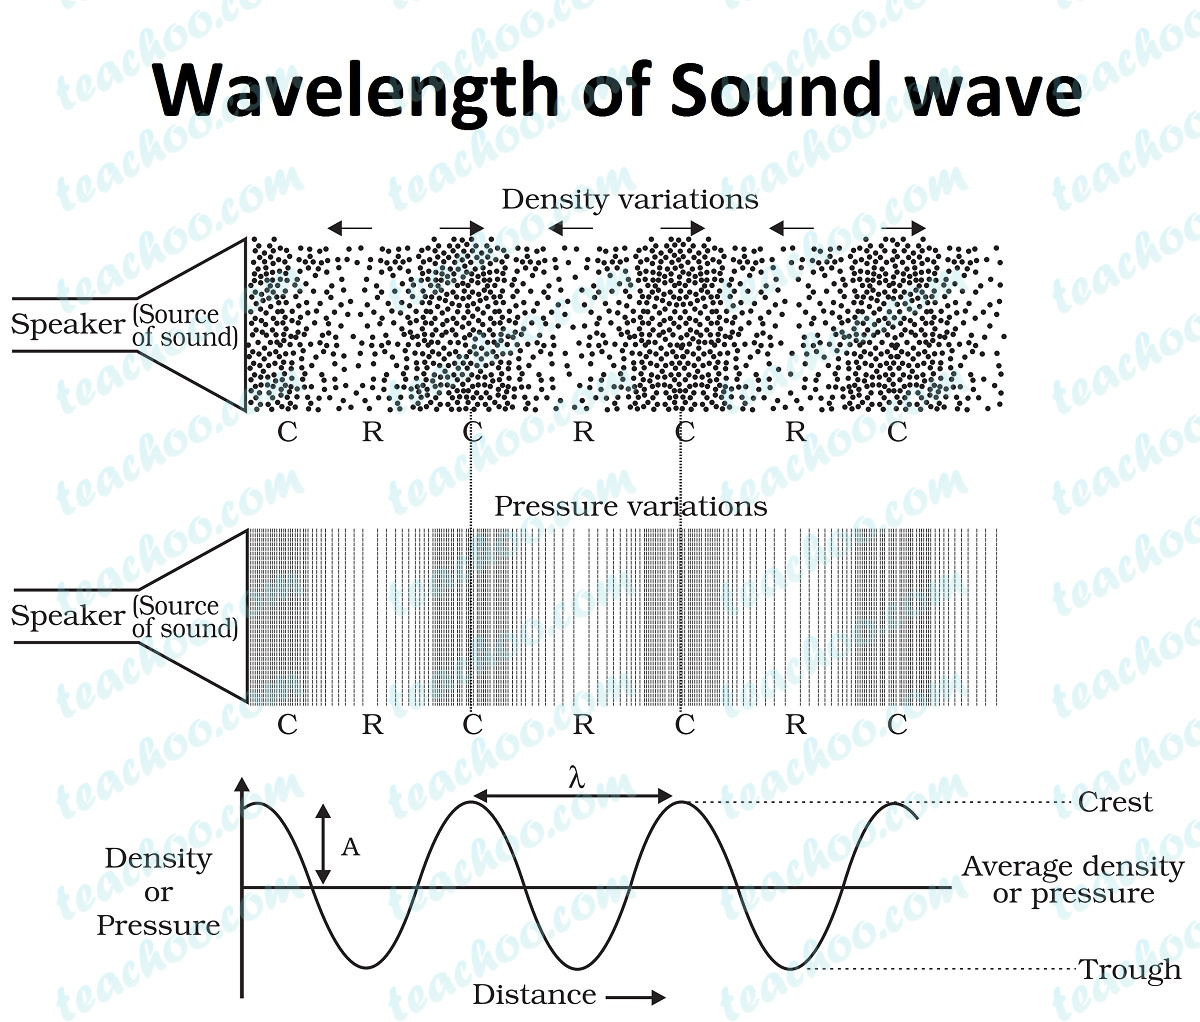 wavelength-of-sound-wave.jpg